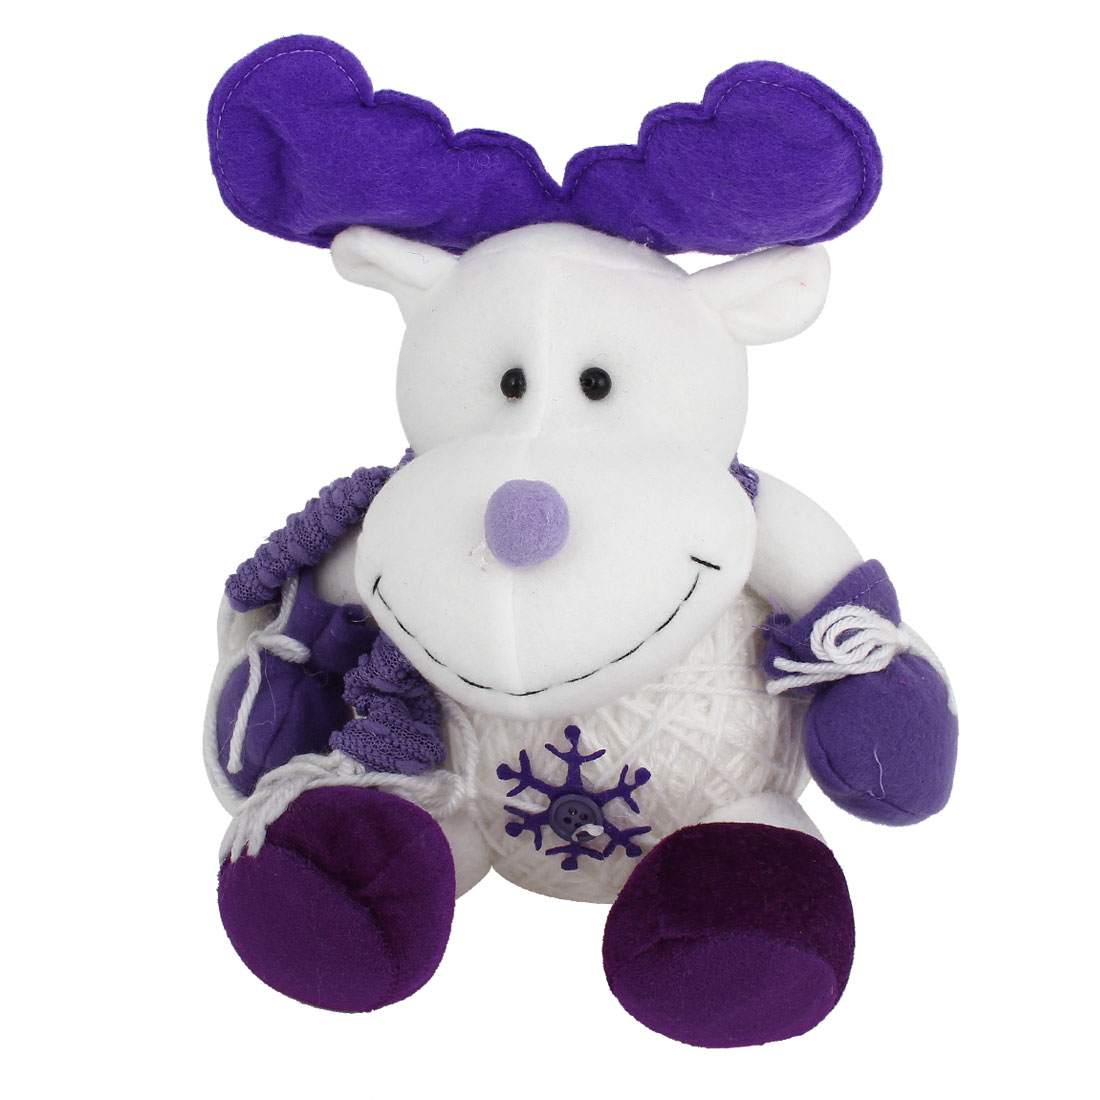 Reindeer Shape Christmas Toy Doll Gift Purple White for Xmas Trees Ornament